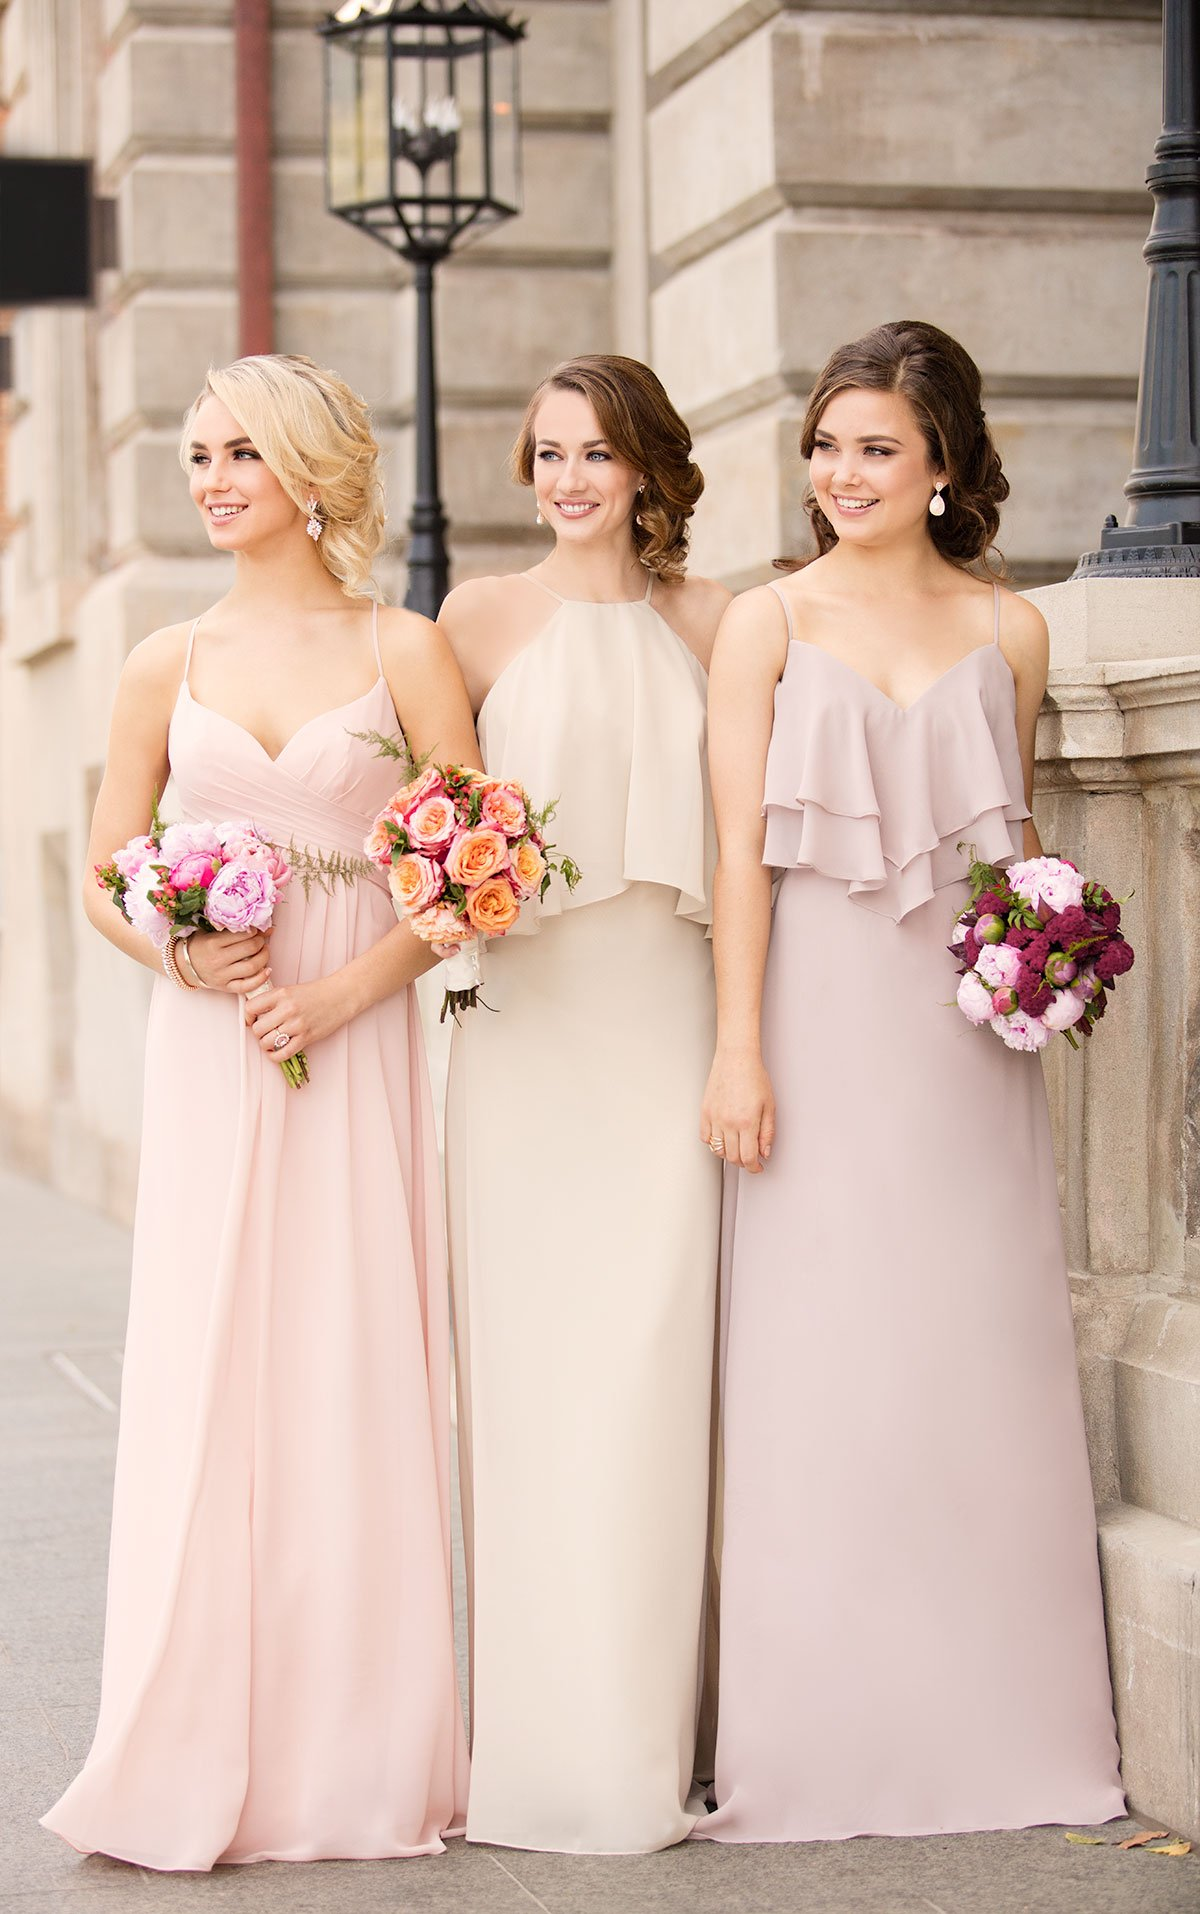 Vestidos para damas de honor hermosos